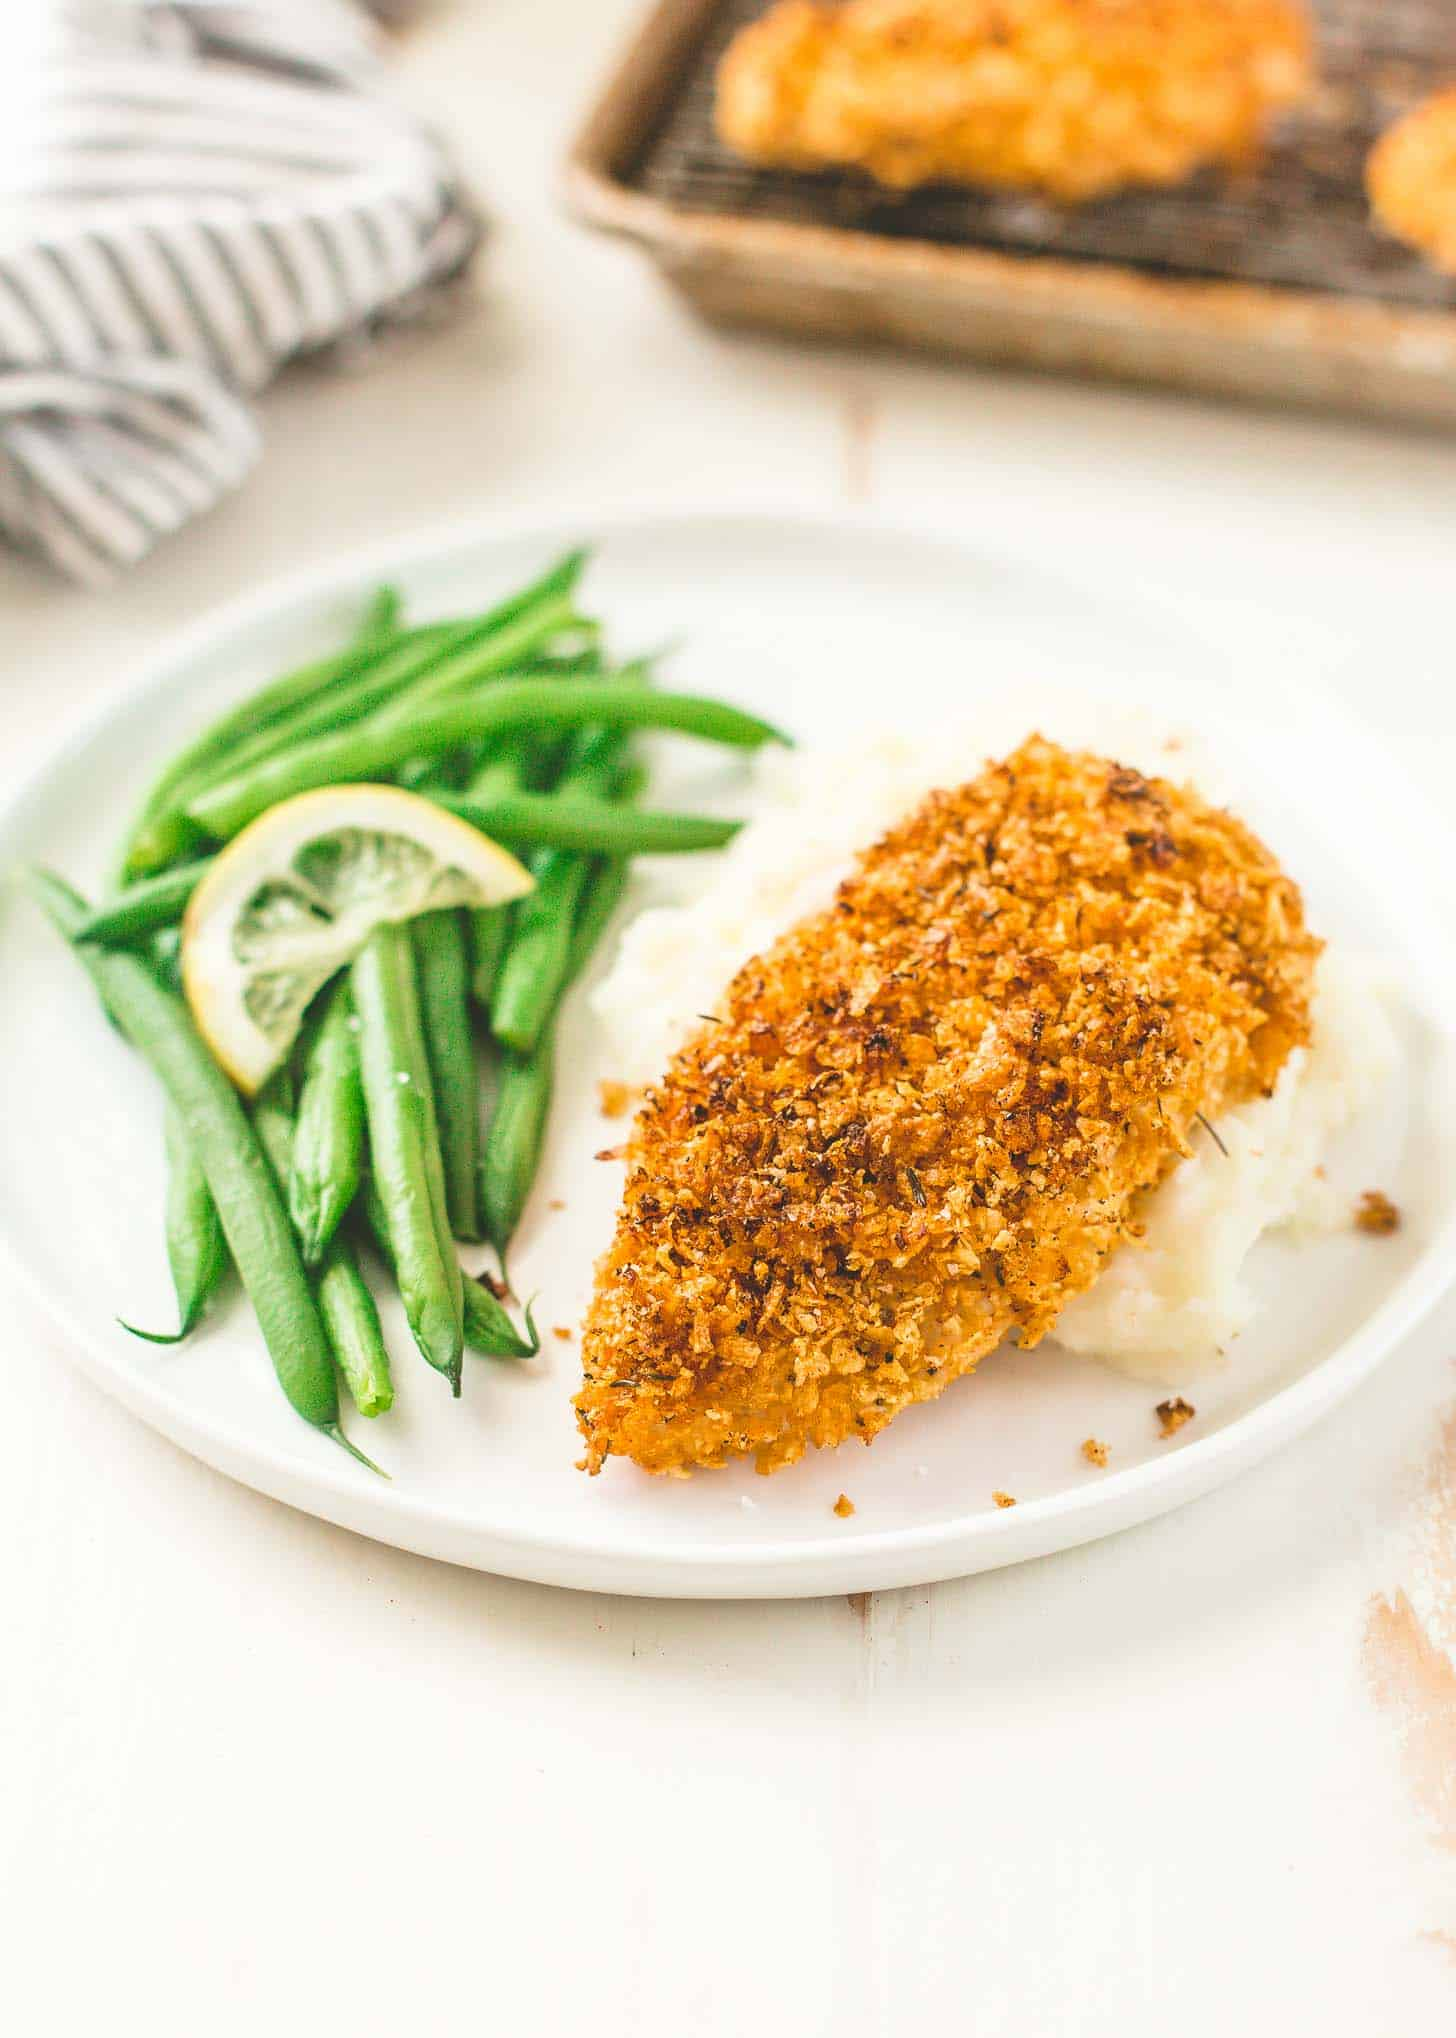 Crispy Baked Cornflake Chicken on a plate with mashed potatoes and green beans